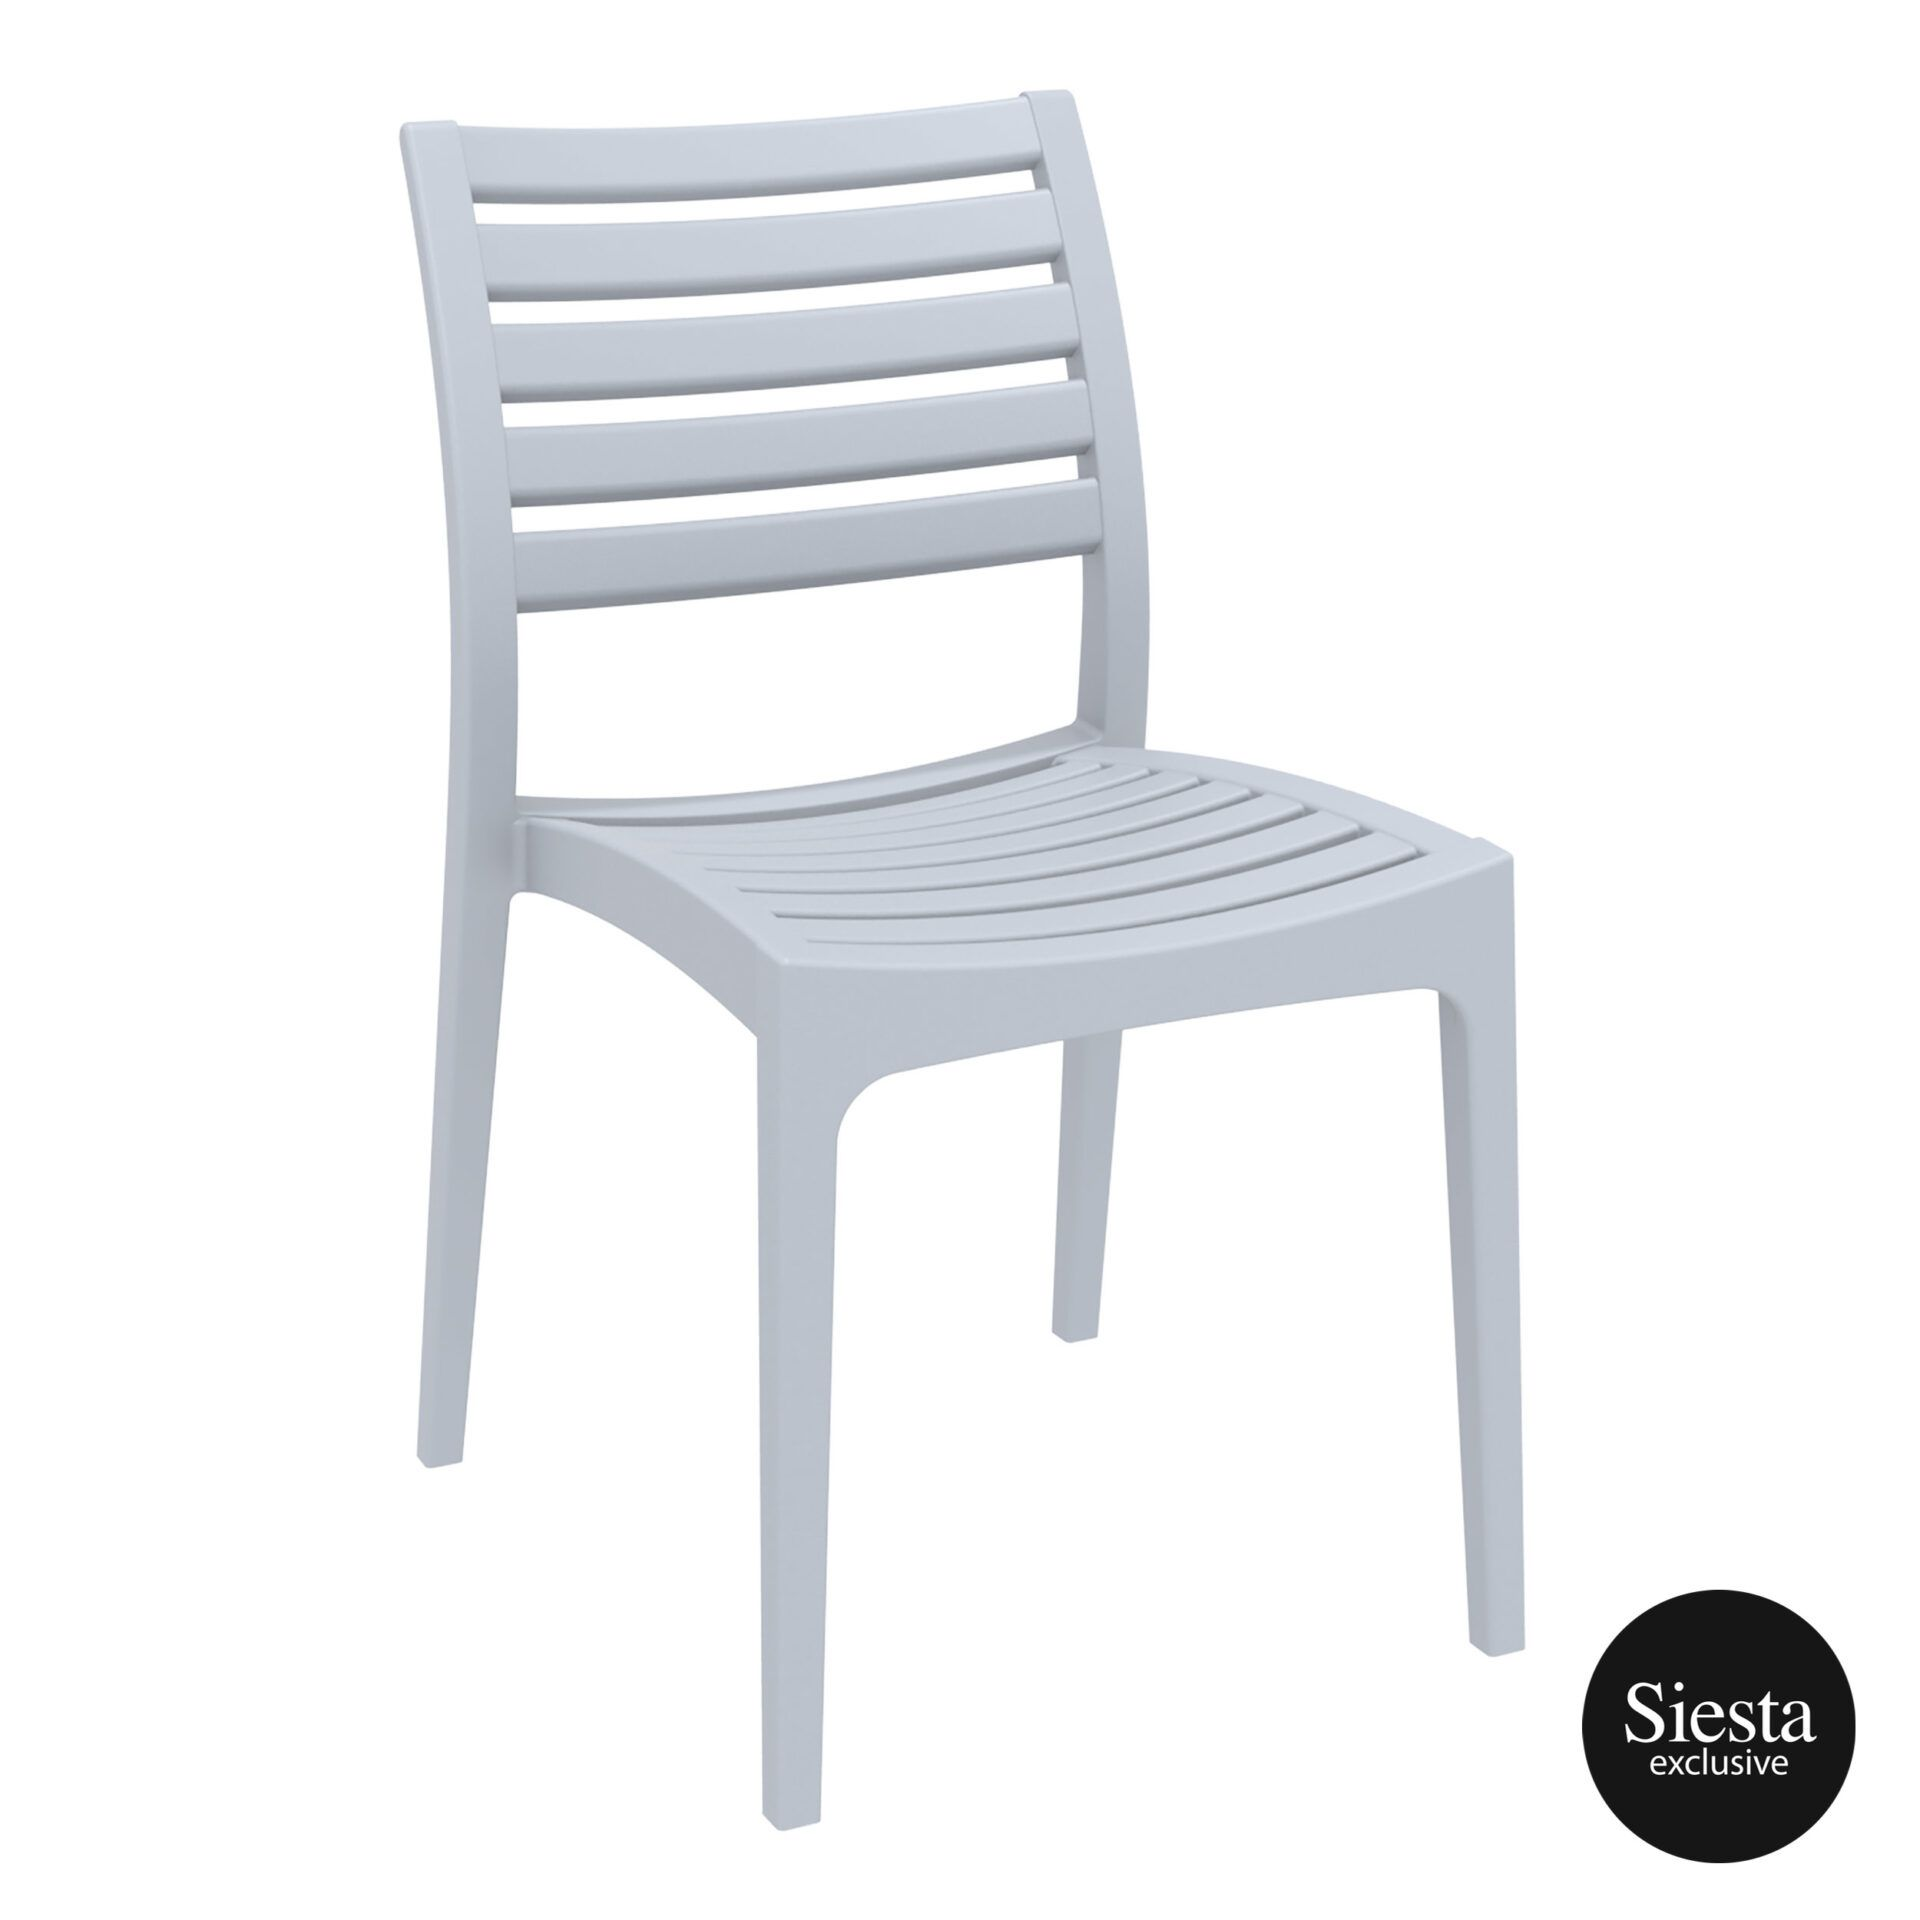 outdoor ares chair silvergrey front side 1